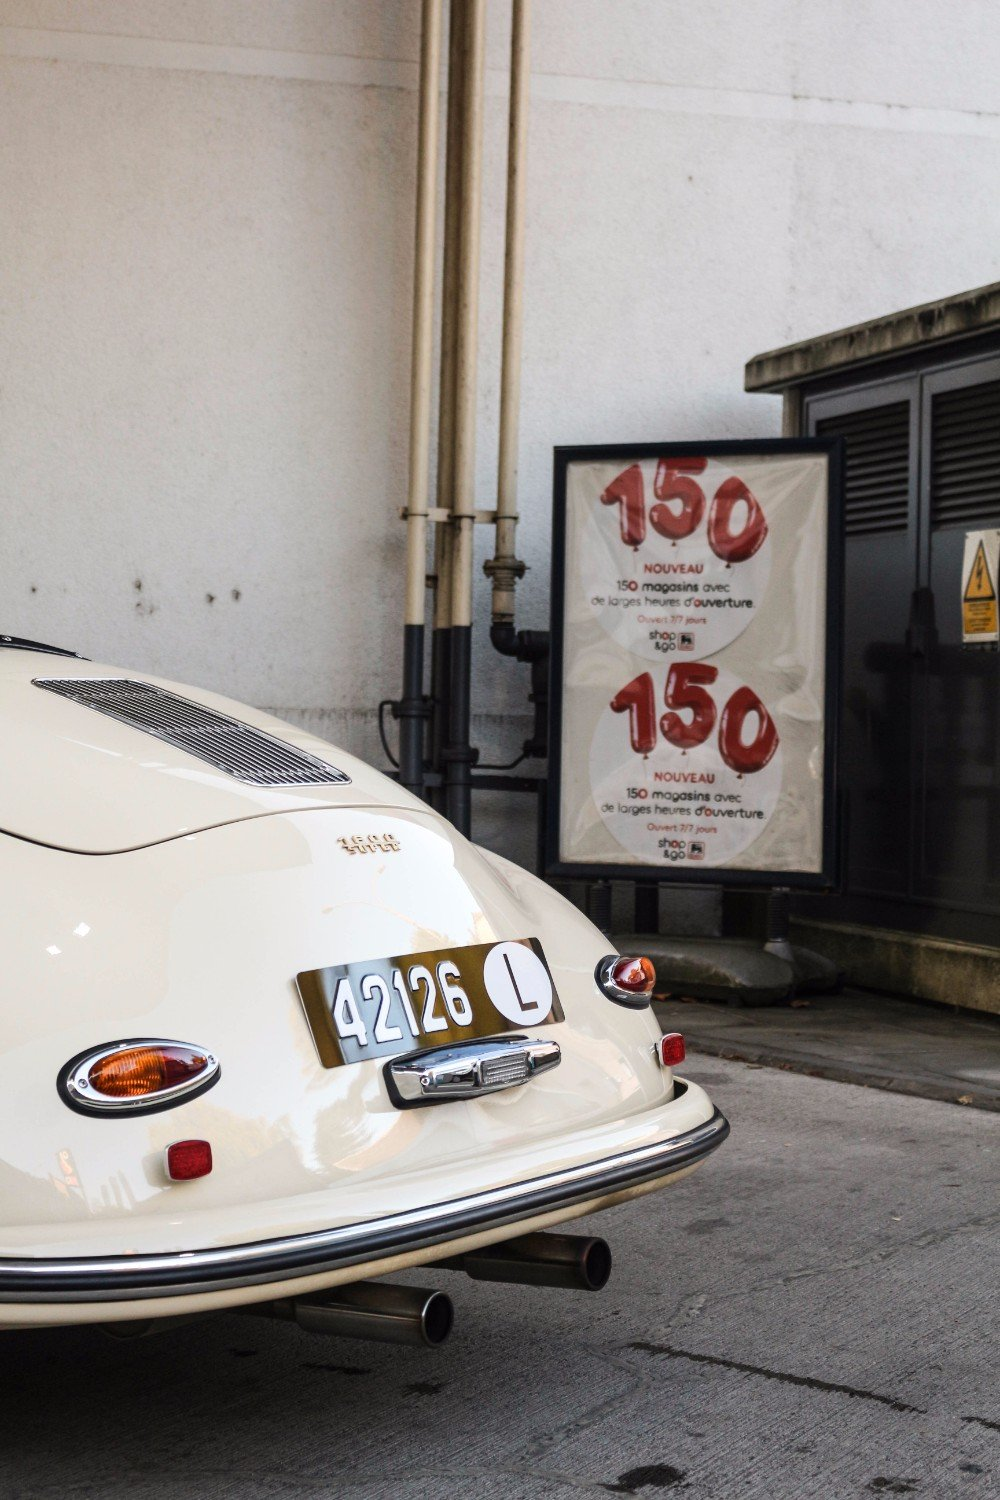 Refueling the 356 Speedster